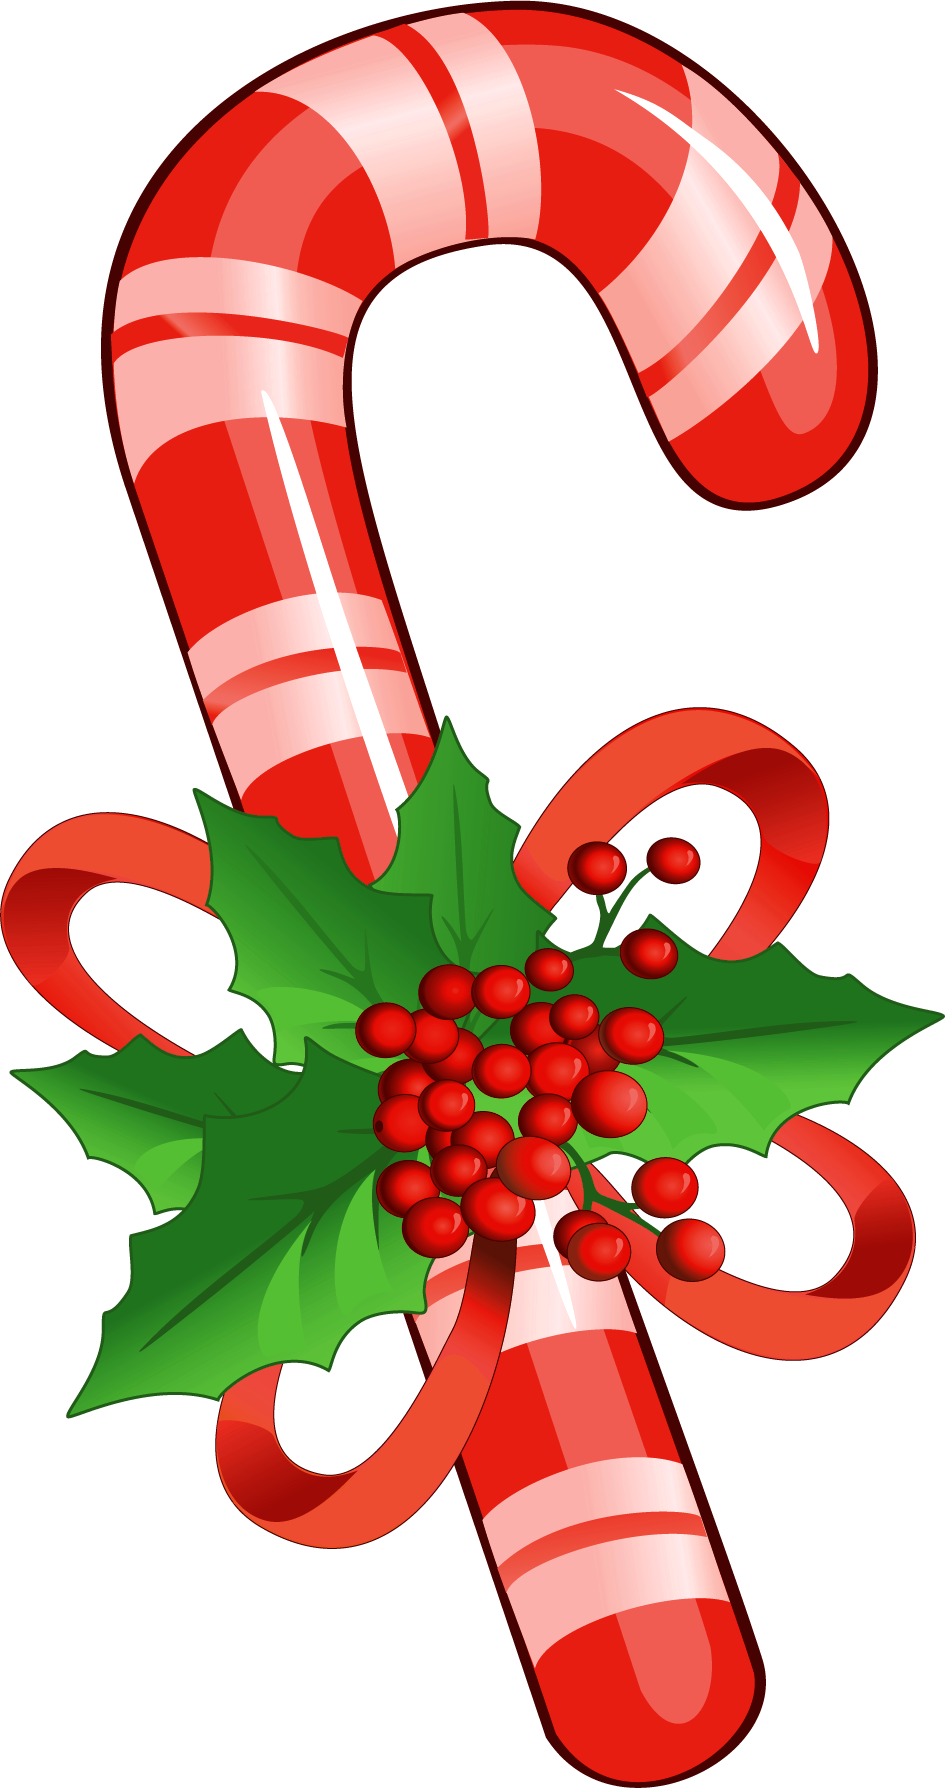 candy cane clipart png Google Search Christmas